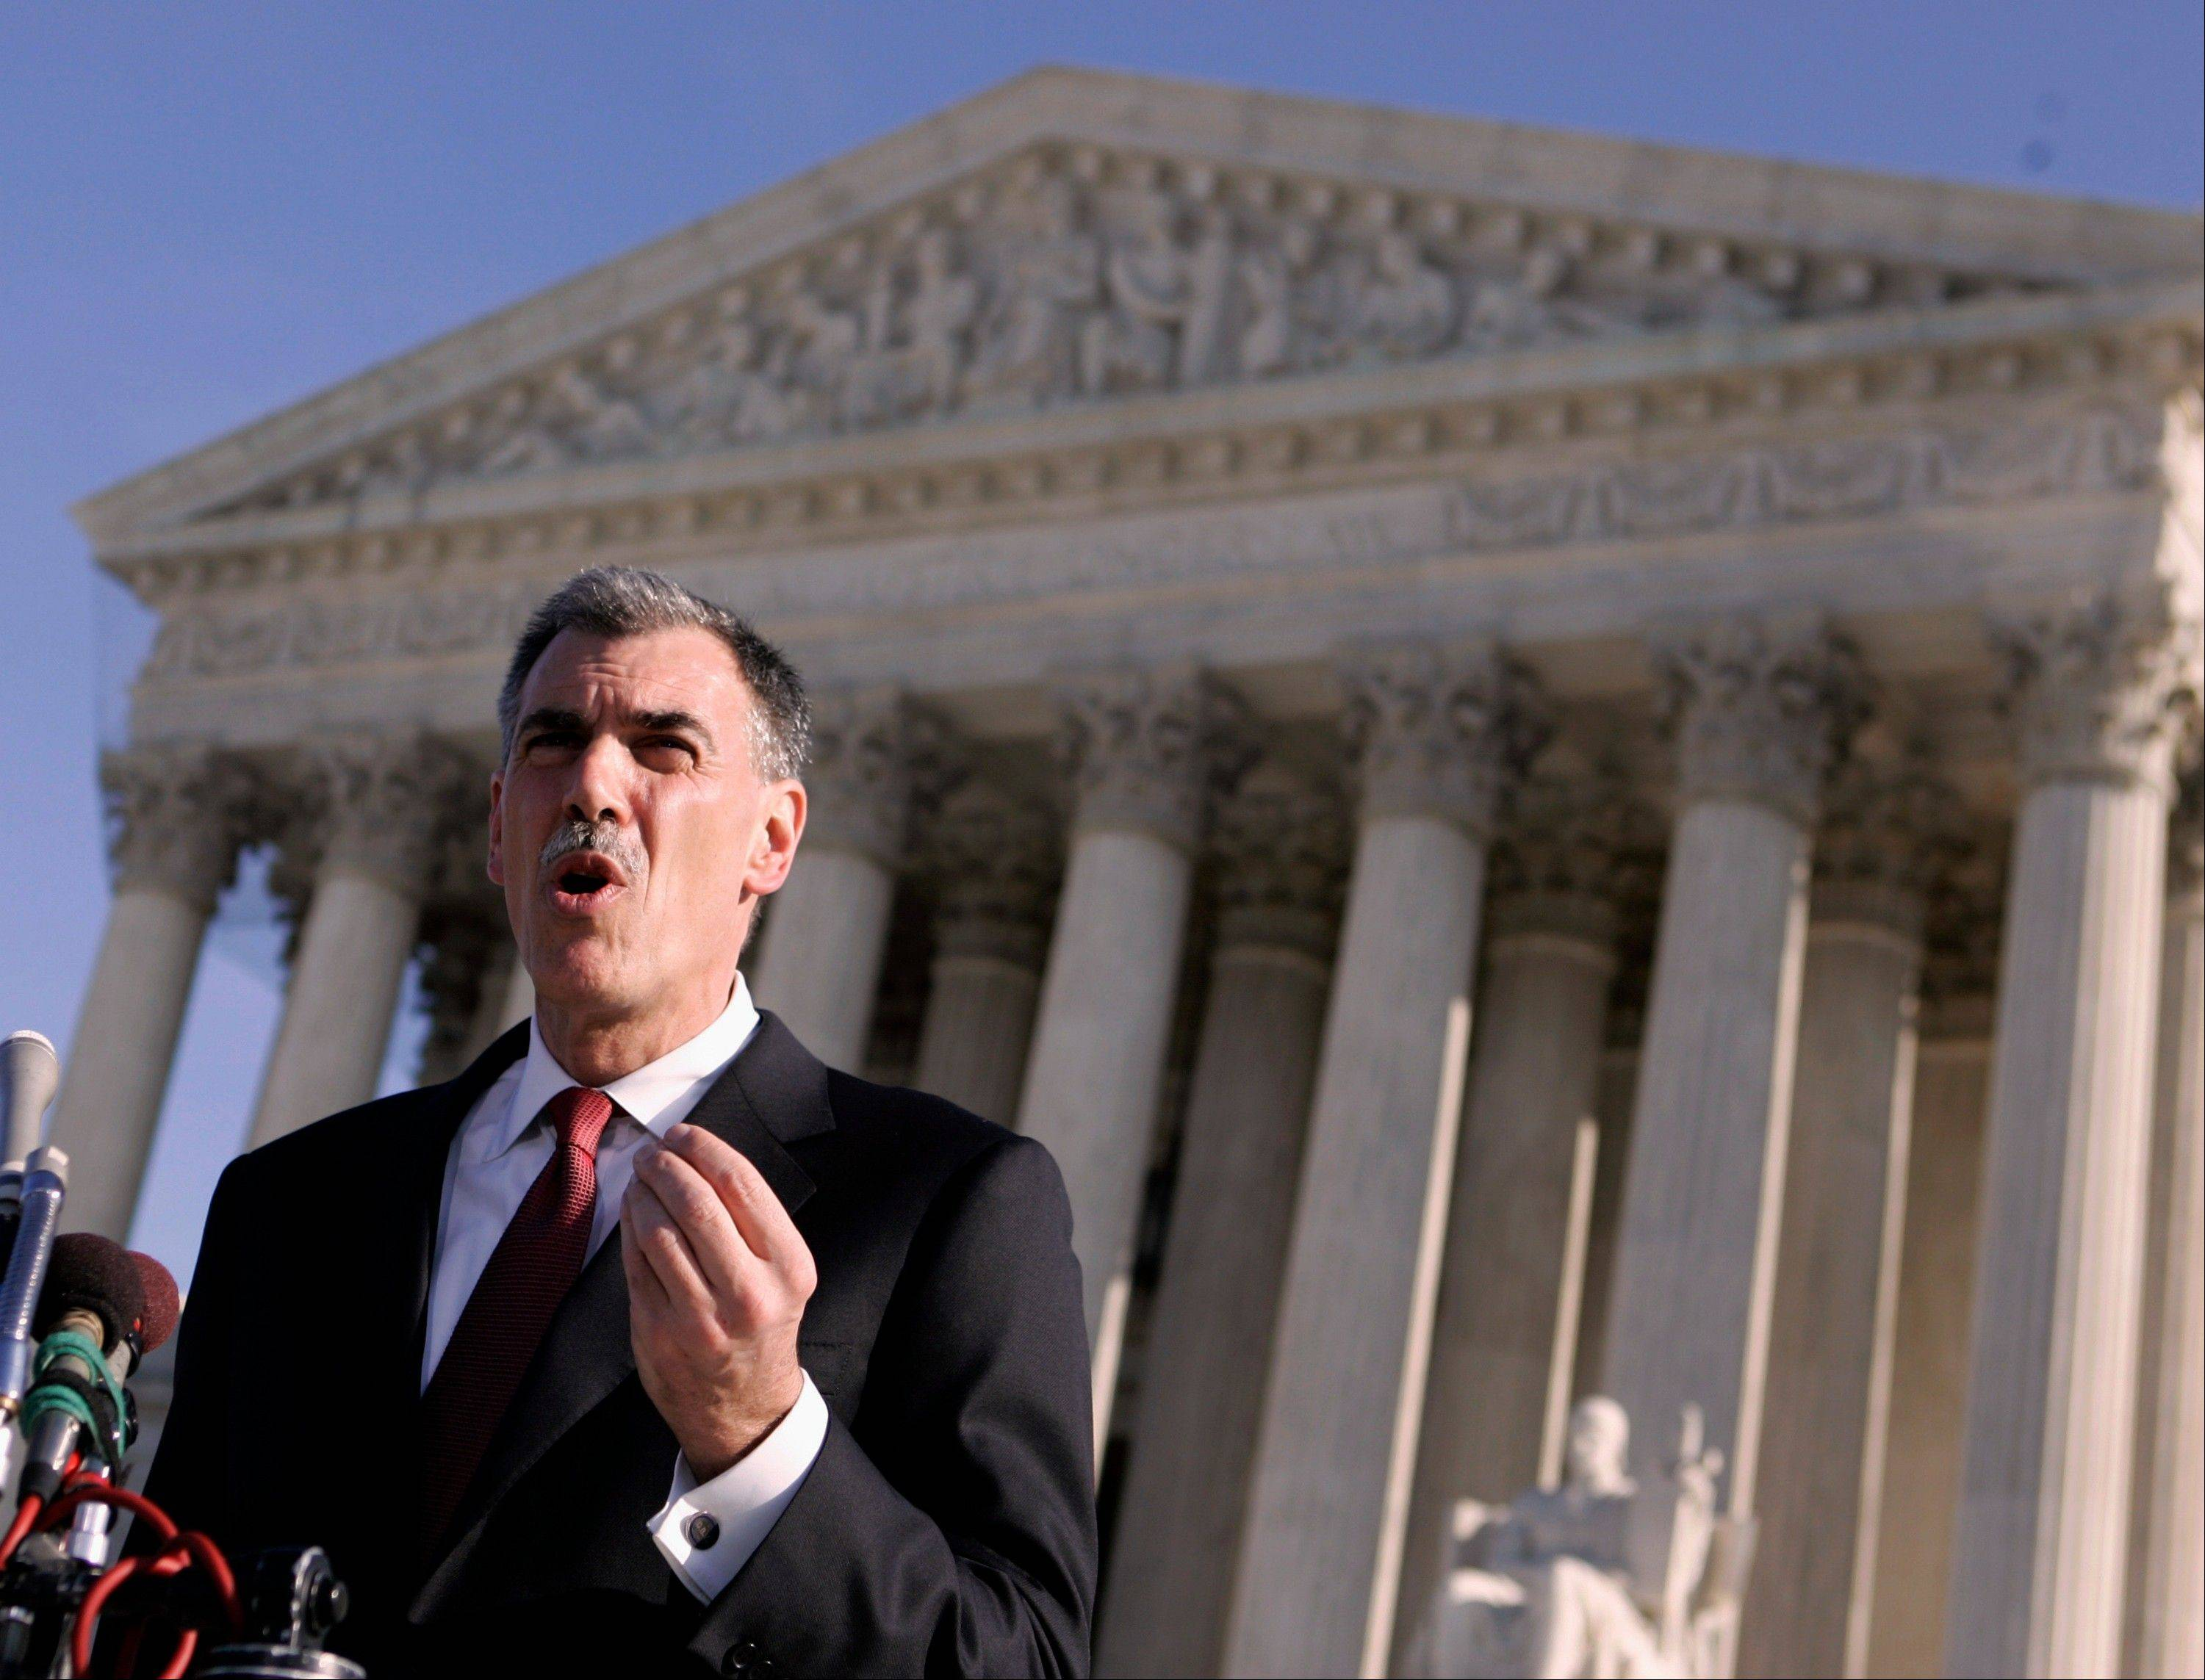 Then-Attorney Donald Verrilli talks to media outside the Supreme Court in 2008. Now President Barack Obama's top Supreme Court lawyer, Solicitor General Verilli, will argue before the Supreme Court this week whether it is legal for patent-holding pharmaceutical companies to pay rivals, who make generic drugs, to temporarily keep those cheaper versions of their brand-name drugs off the market.